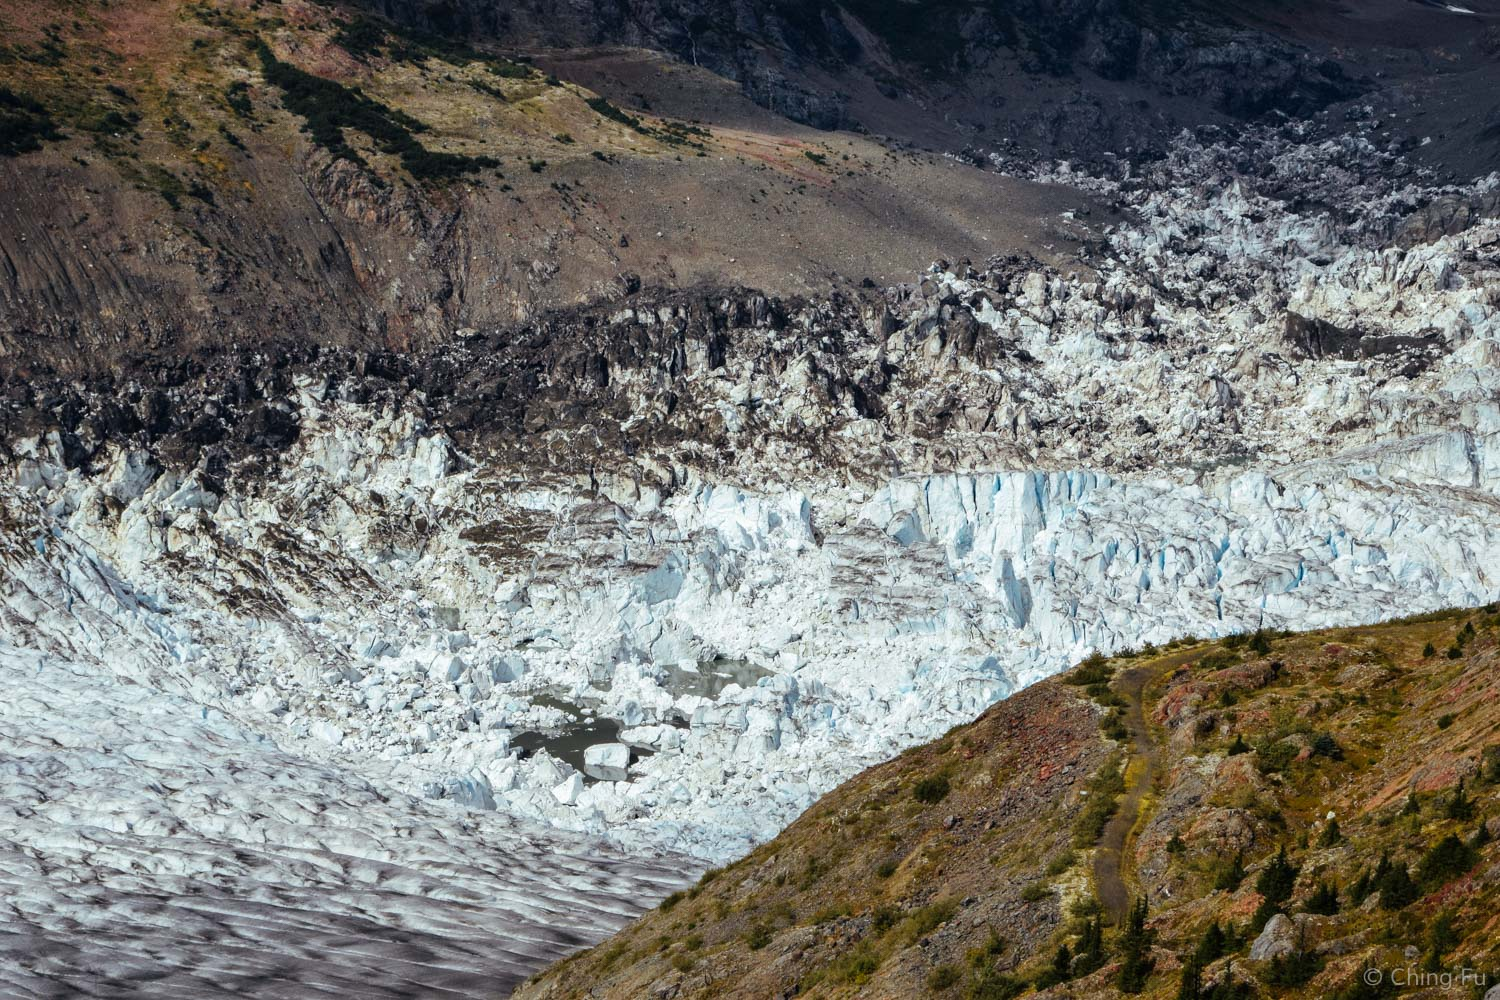 At the northern end of Salmon Glacier (the right arm) is Summit Lake, which is filled with ice blocks.